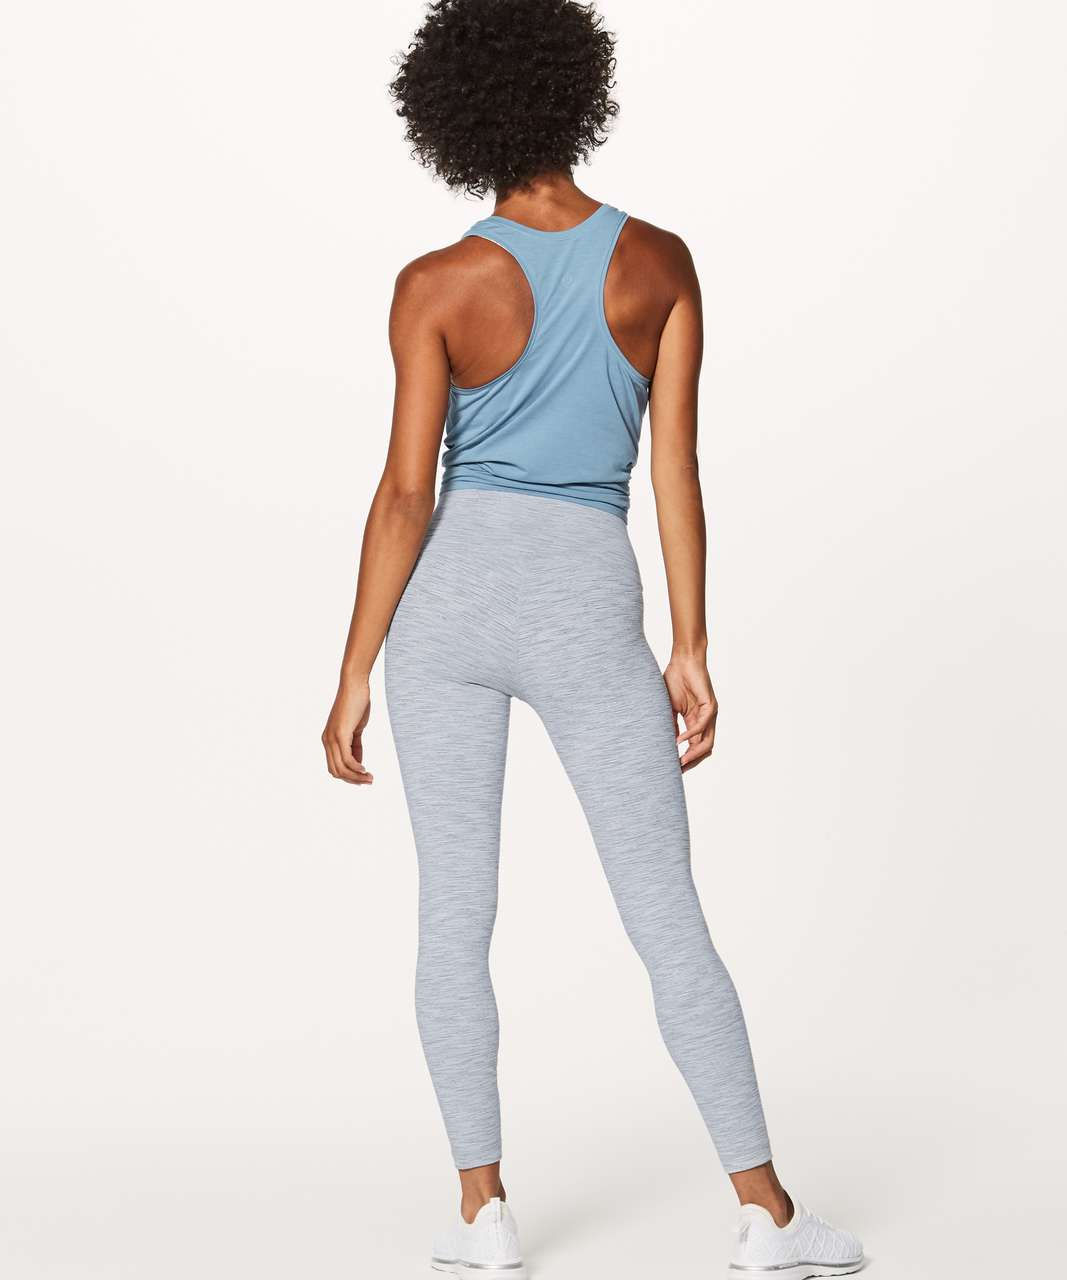 "Lululemon Wunder Under Hi-Rise 7/8 Tight *Luxtreme 25"" - Wee Are From Space Ice Grey Alpine White"